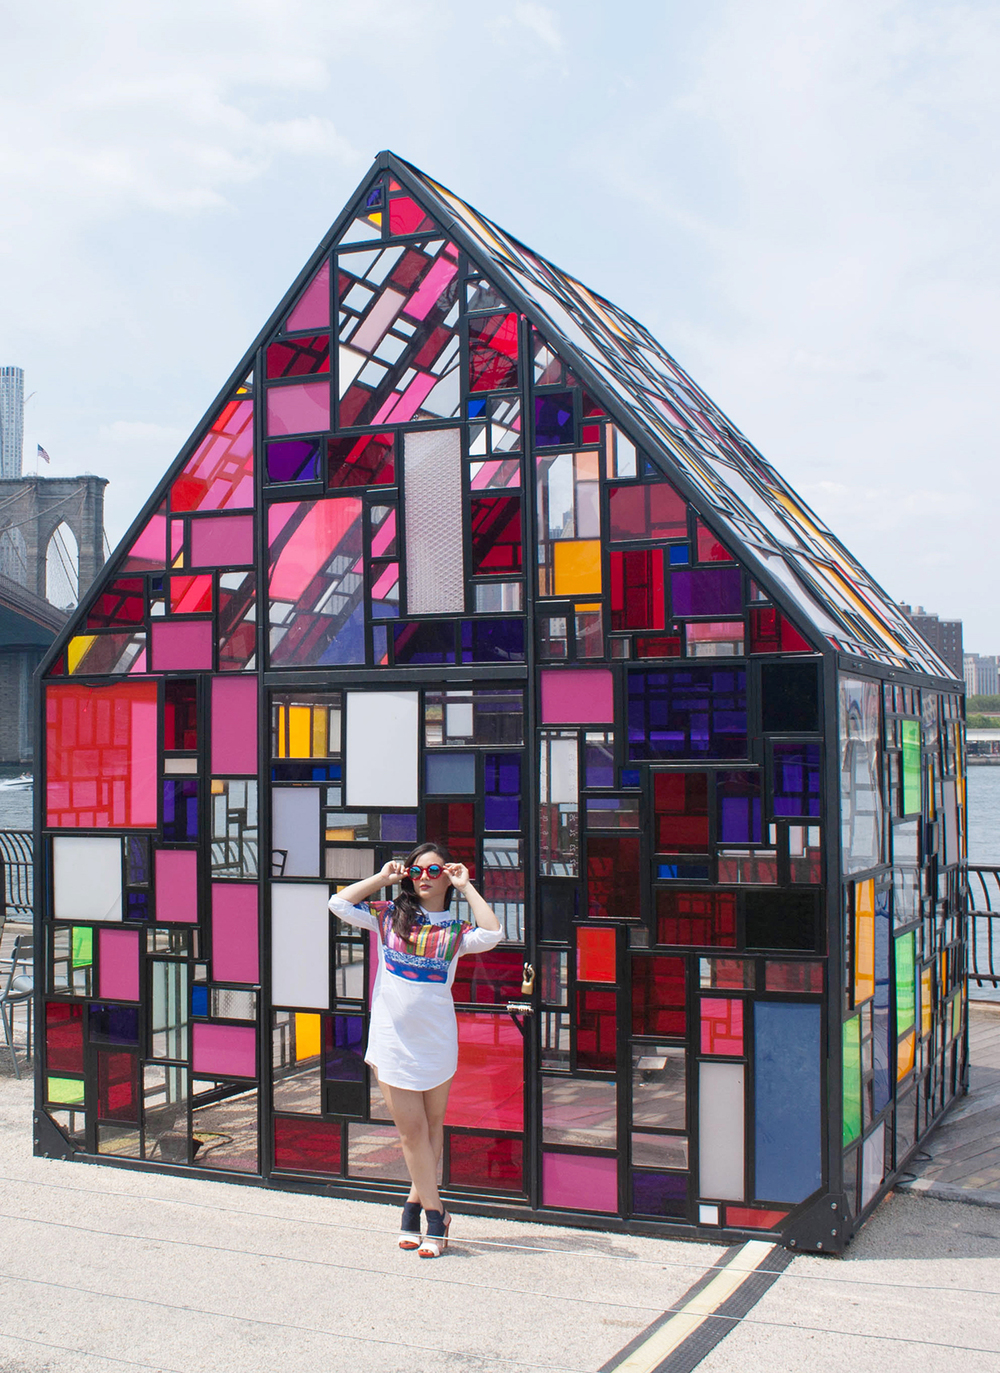 tom fruin kolonihavehus